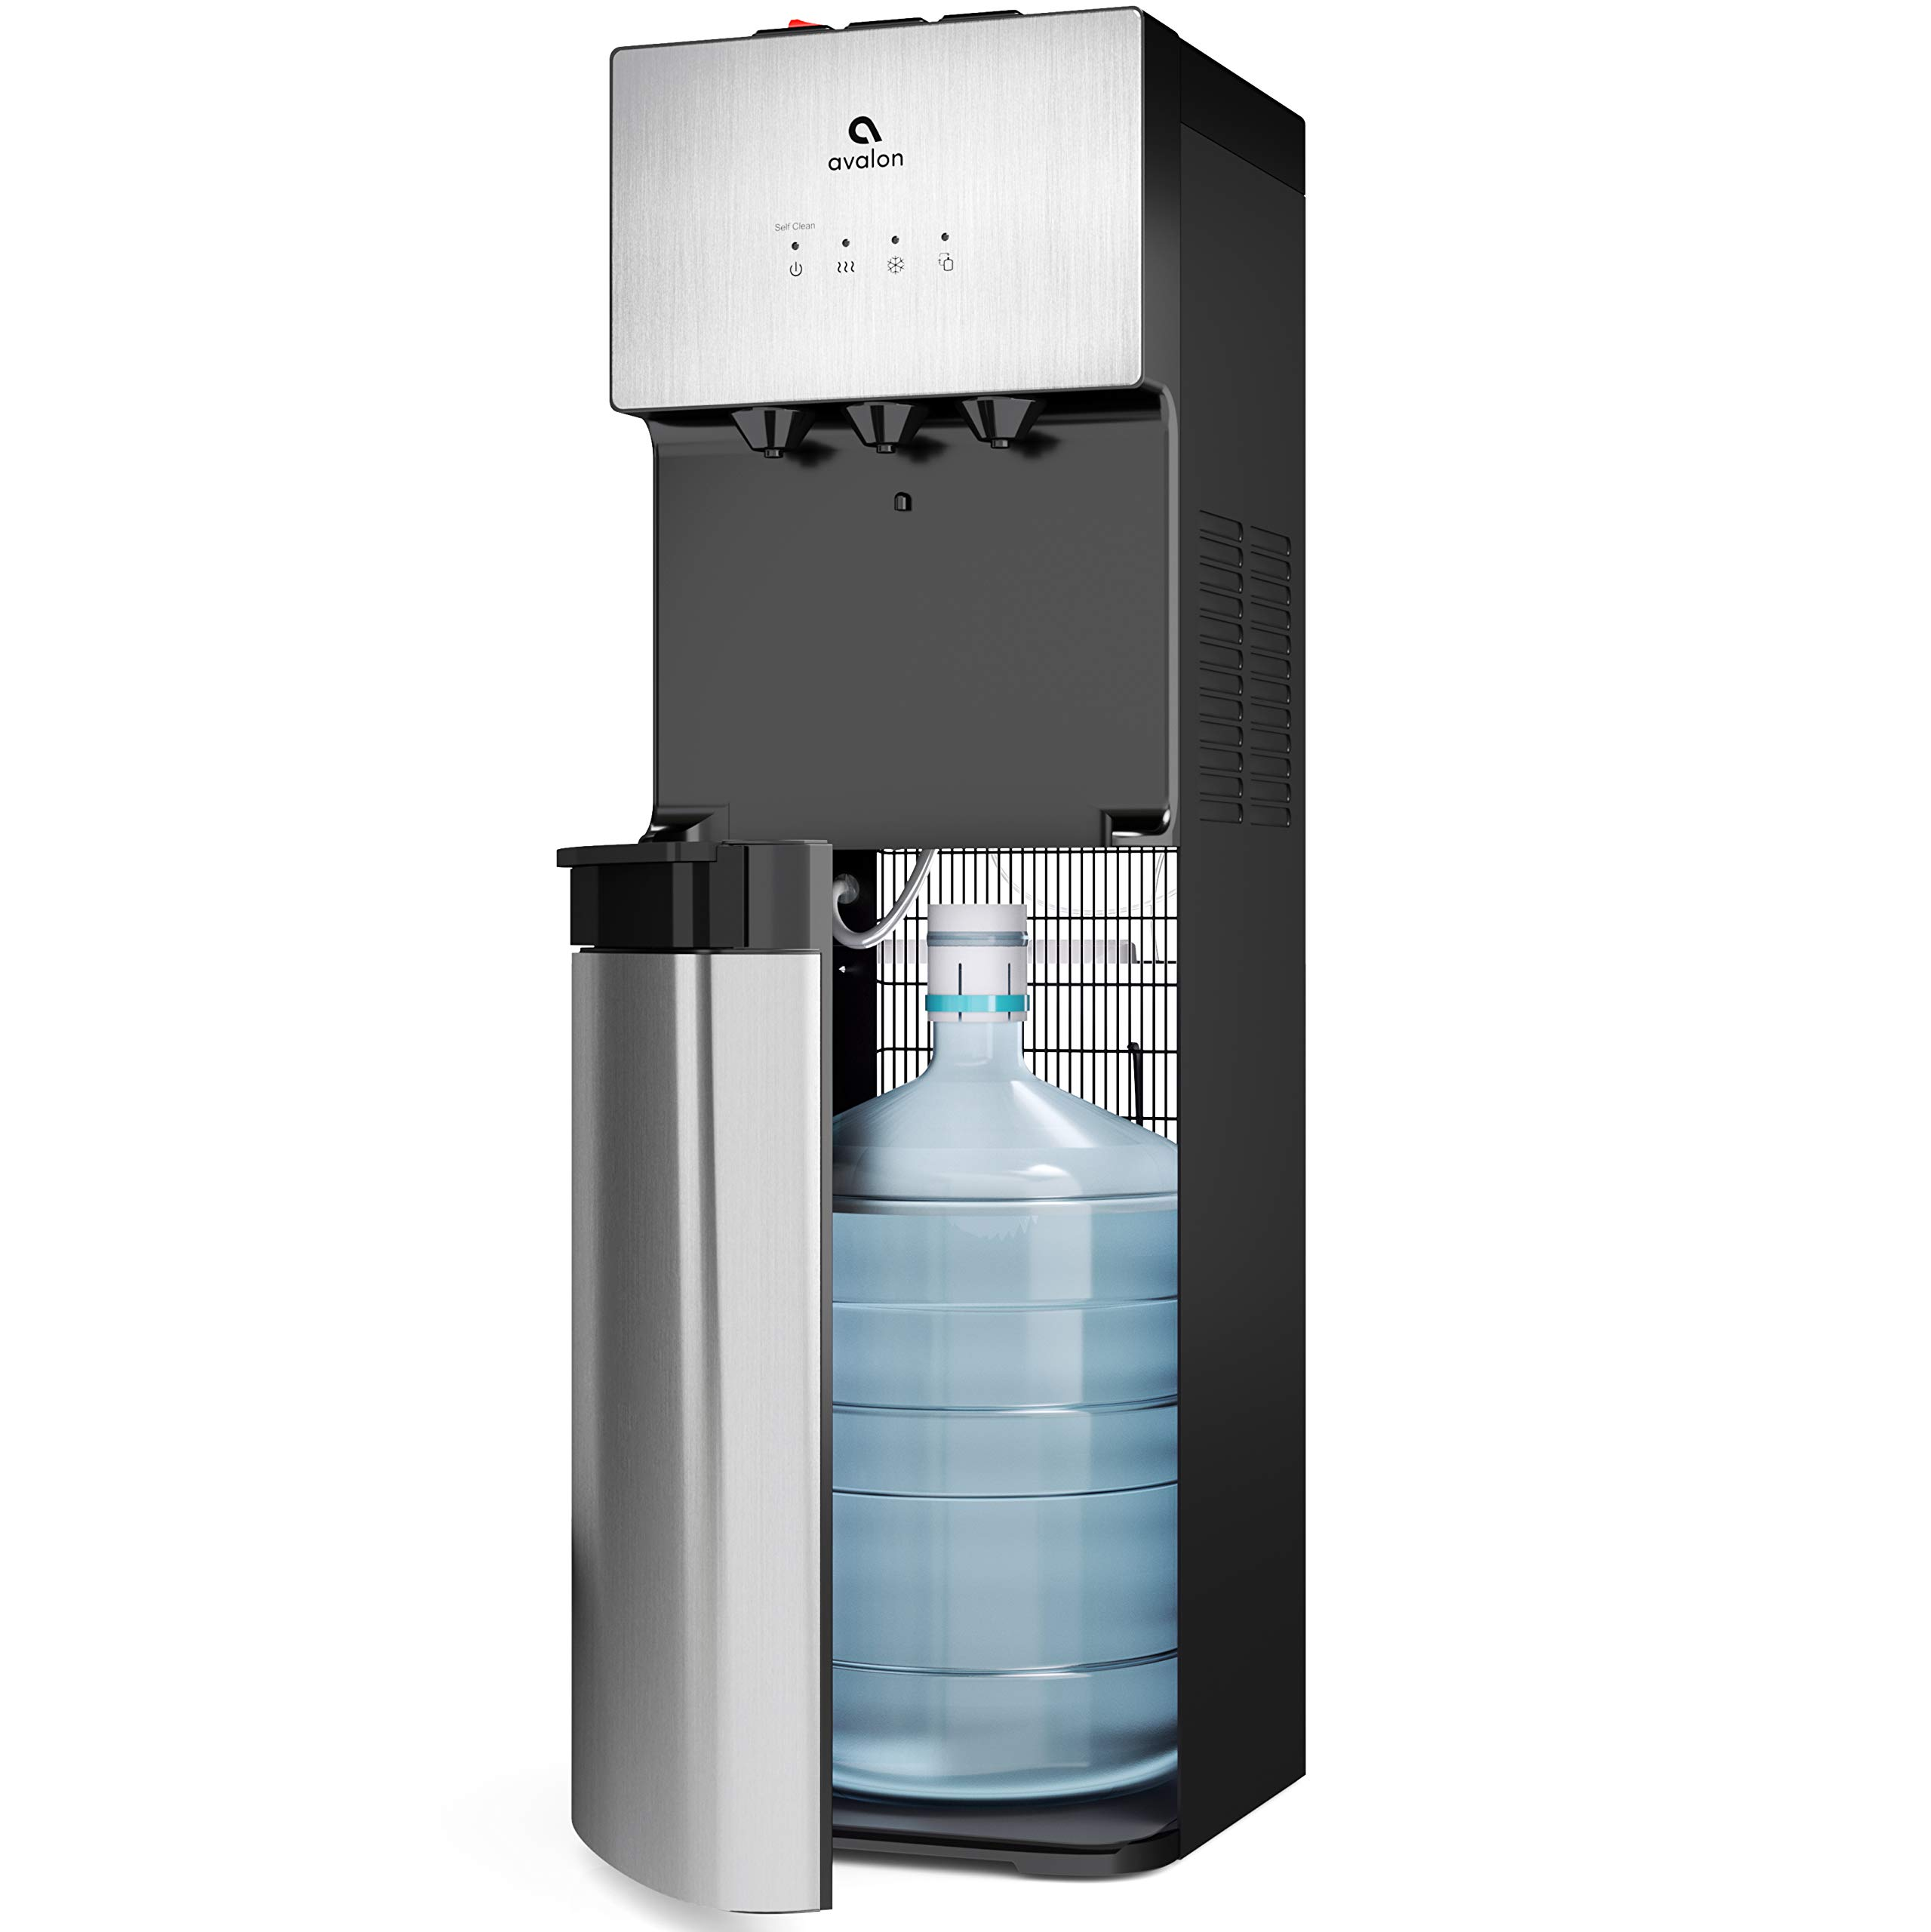 Avalon Limited Edition Self Cleaning Water Cooler Dispenser, 3 Temperature Settings - Hot, Cold & Cool Water, Durable Stainless Steel Construction, Bottom Loading - UL/Energy Star Approved by Avalon